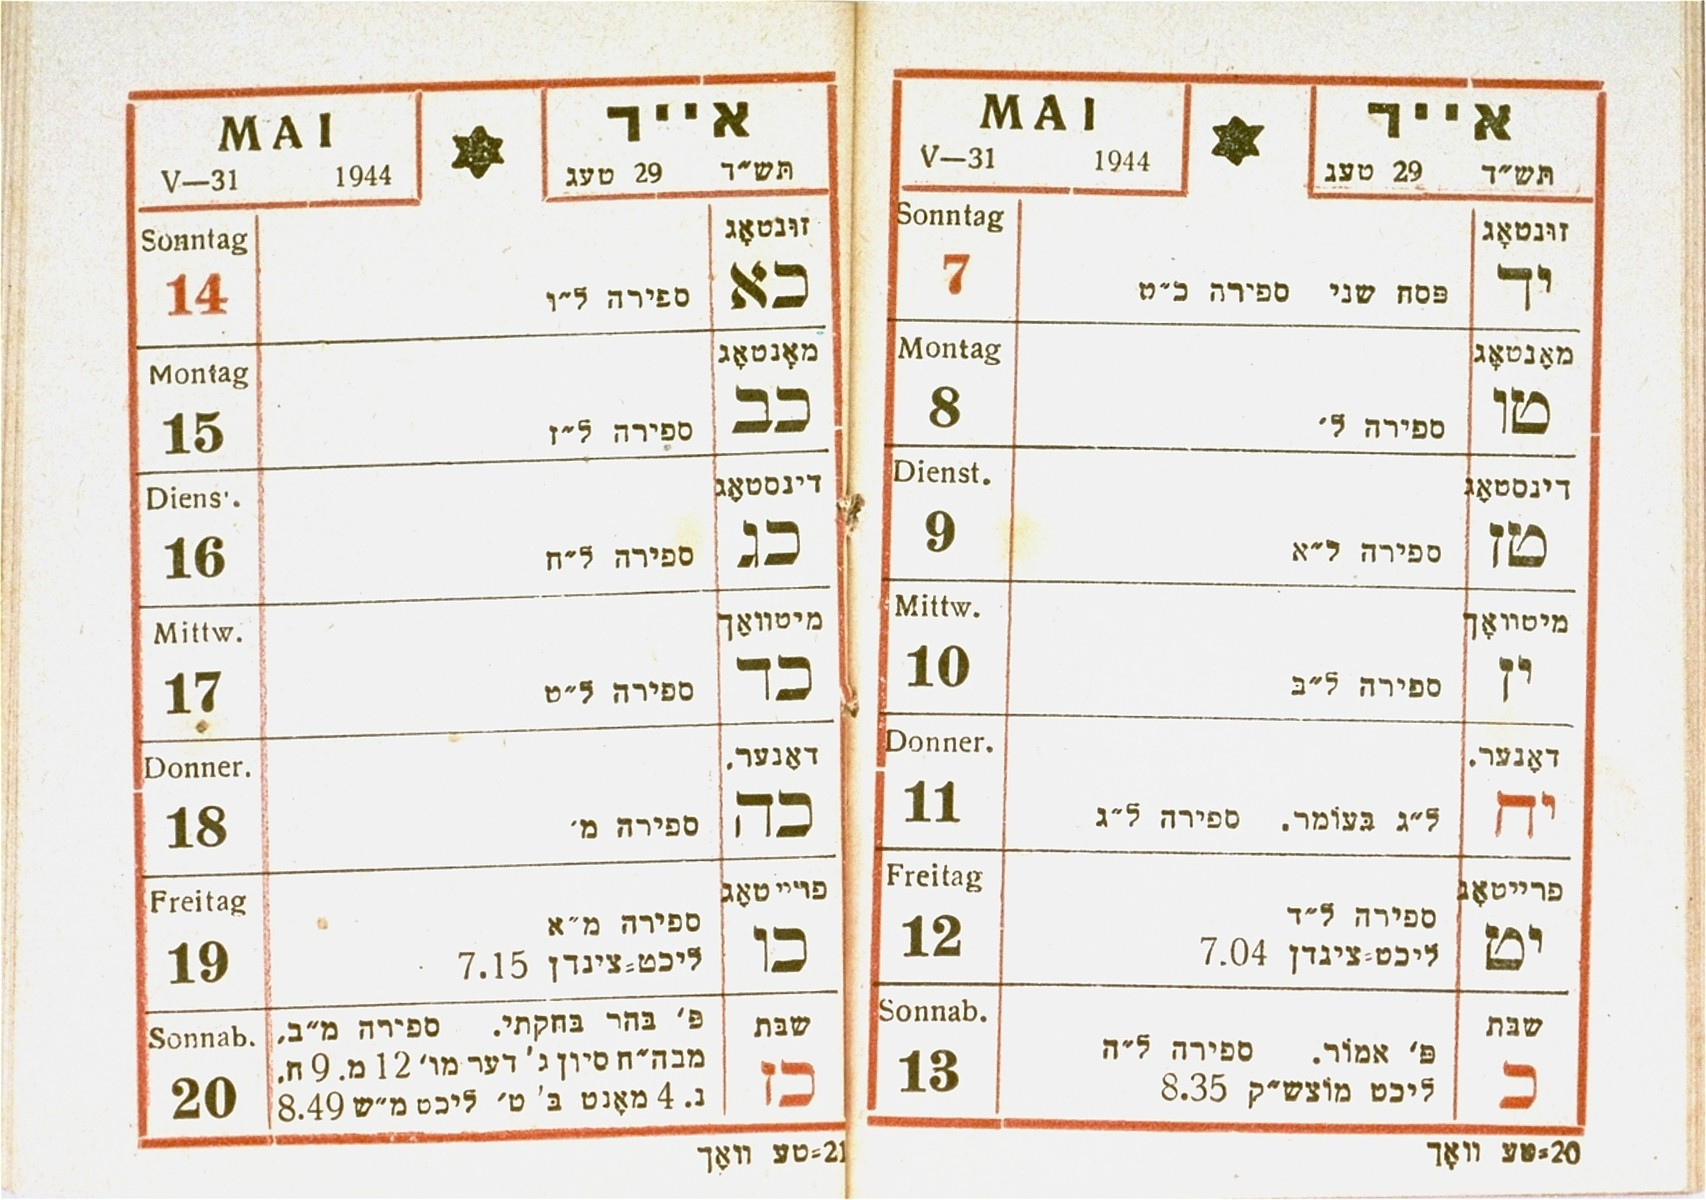 A page from a pocket calendar for the year 1944, printed in the Lodz ghetto.  The calendar was owned by Bernard Fuchs, head of the employment office of the Lodz ghetto Jewish Council.